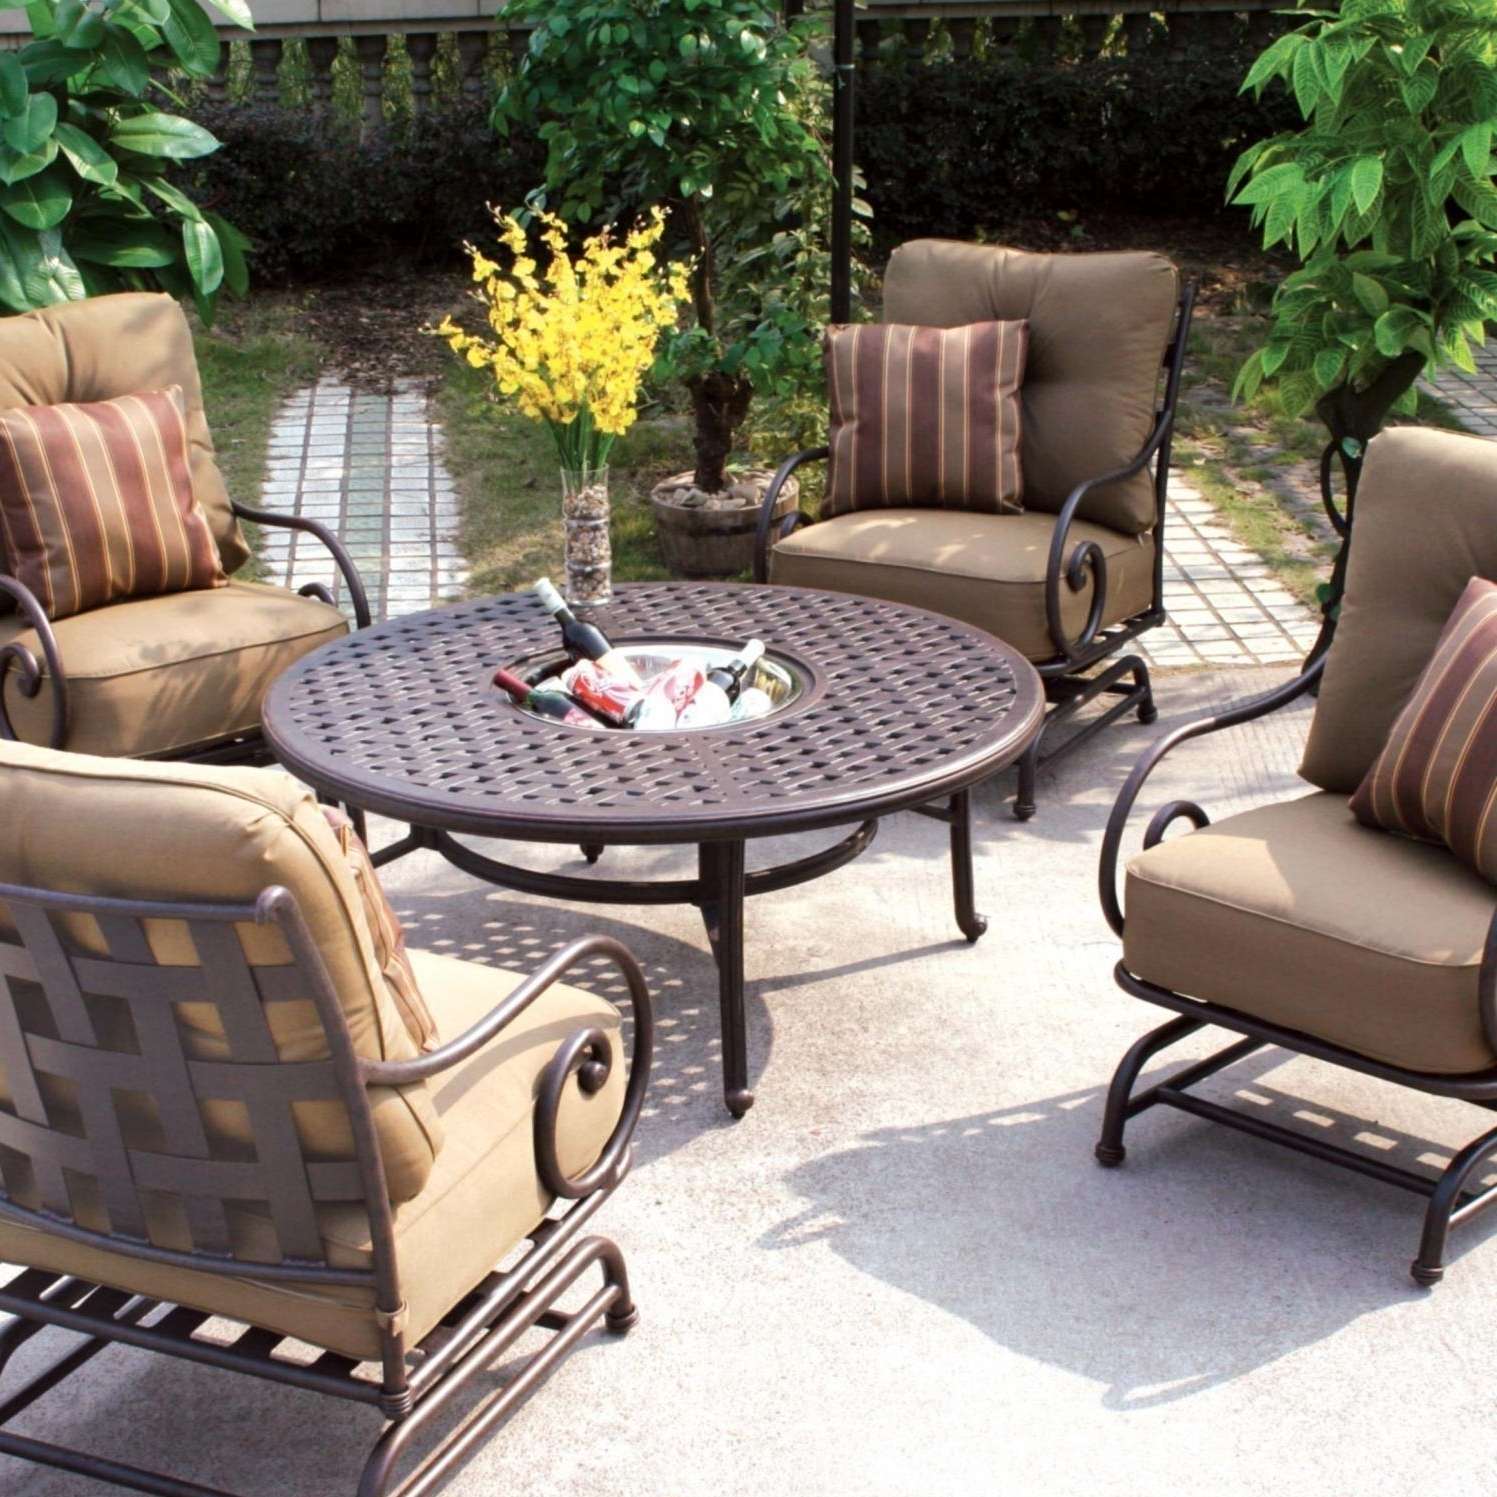 Current Patio : Formidable Searsr Patio Furniture Pictures Concept Clearance With Regard To Sears Patio Furniture Conversation Sets (View 8 of 20)